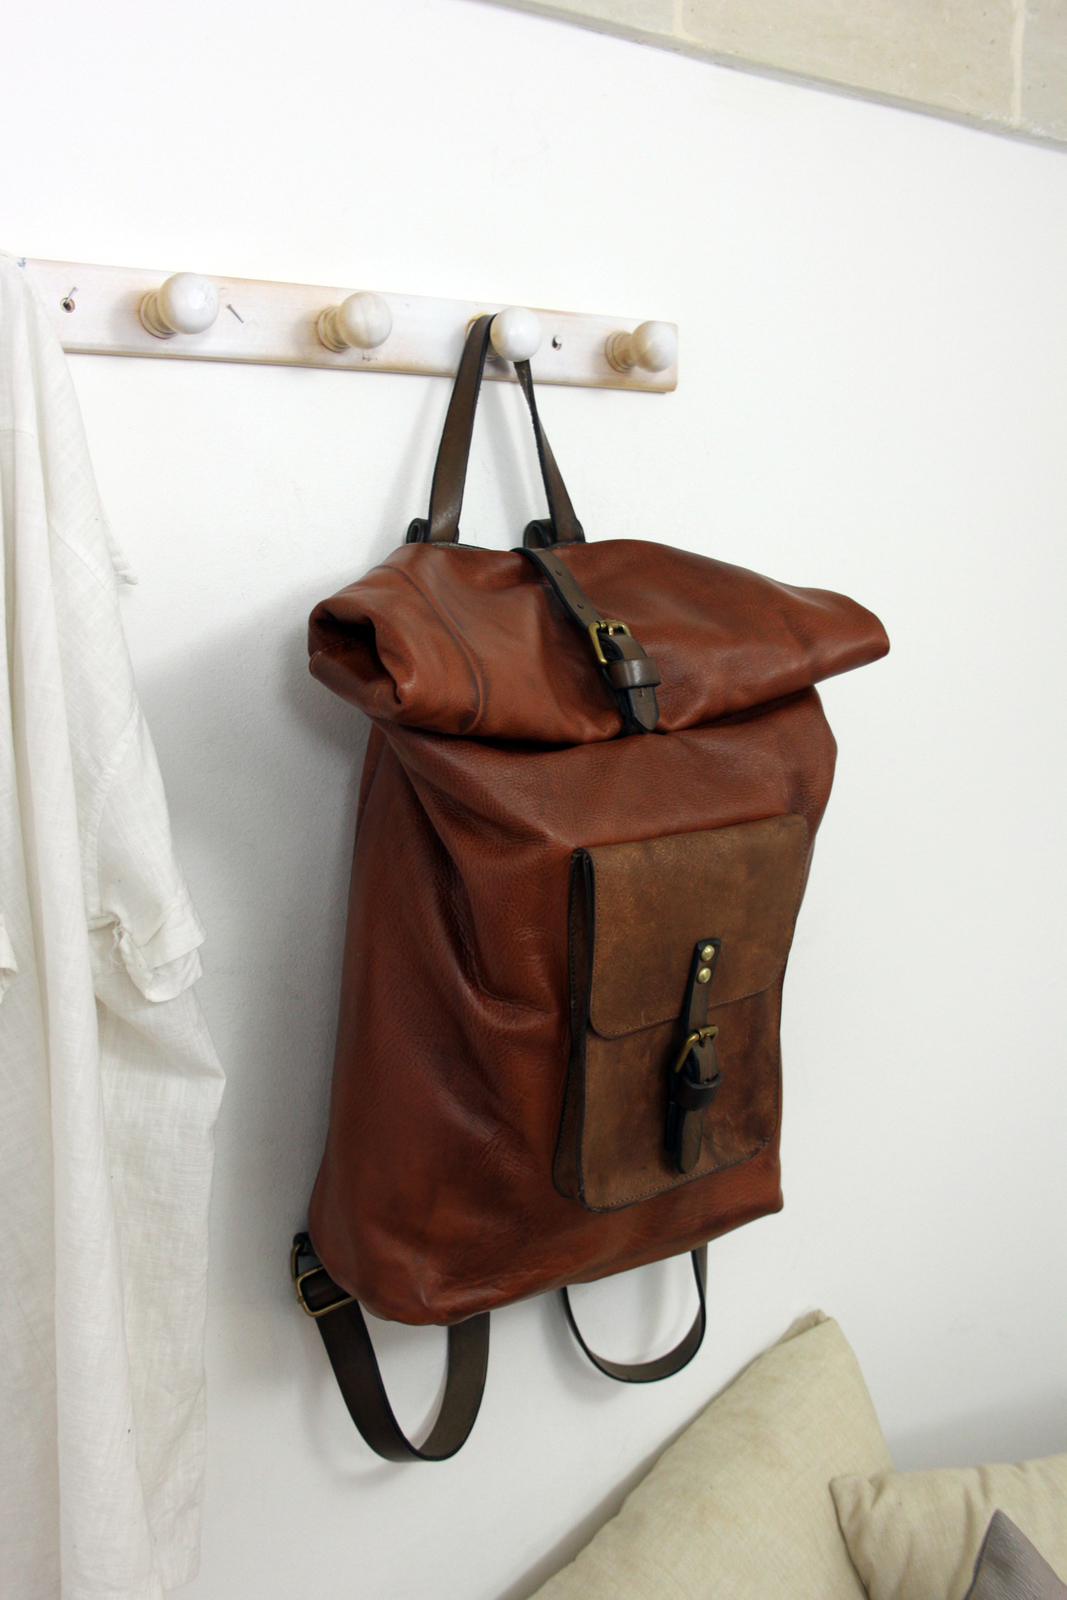 ROLL BACKPACK handmade leather & canvas backpack image 1